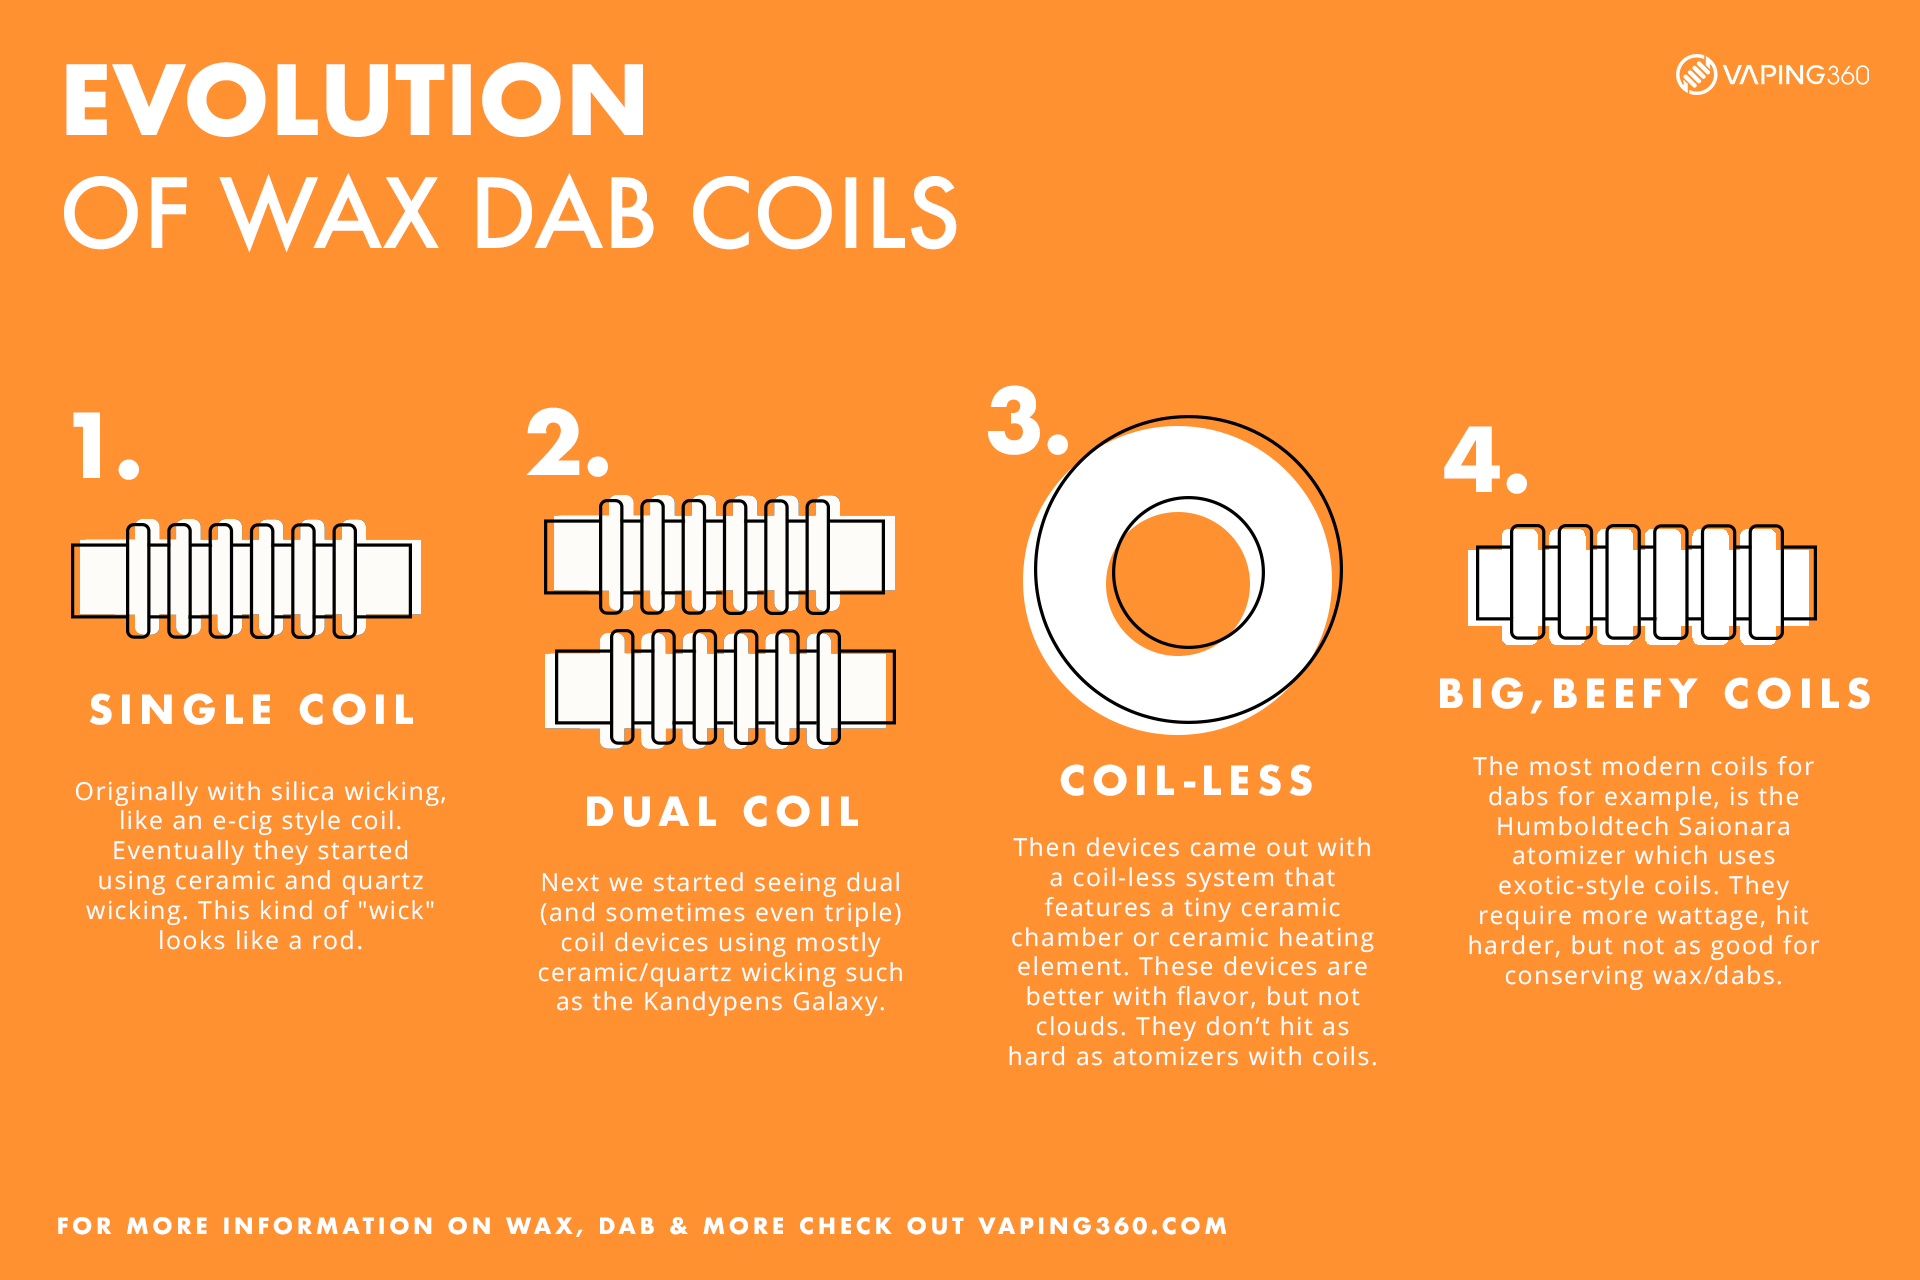 Evolution-of-wax-dab-coils